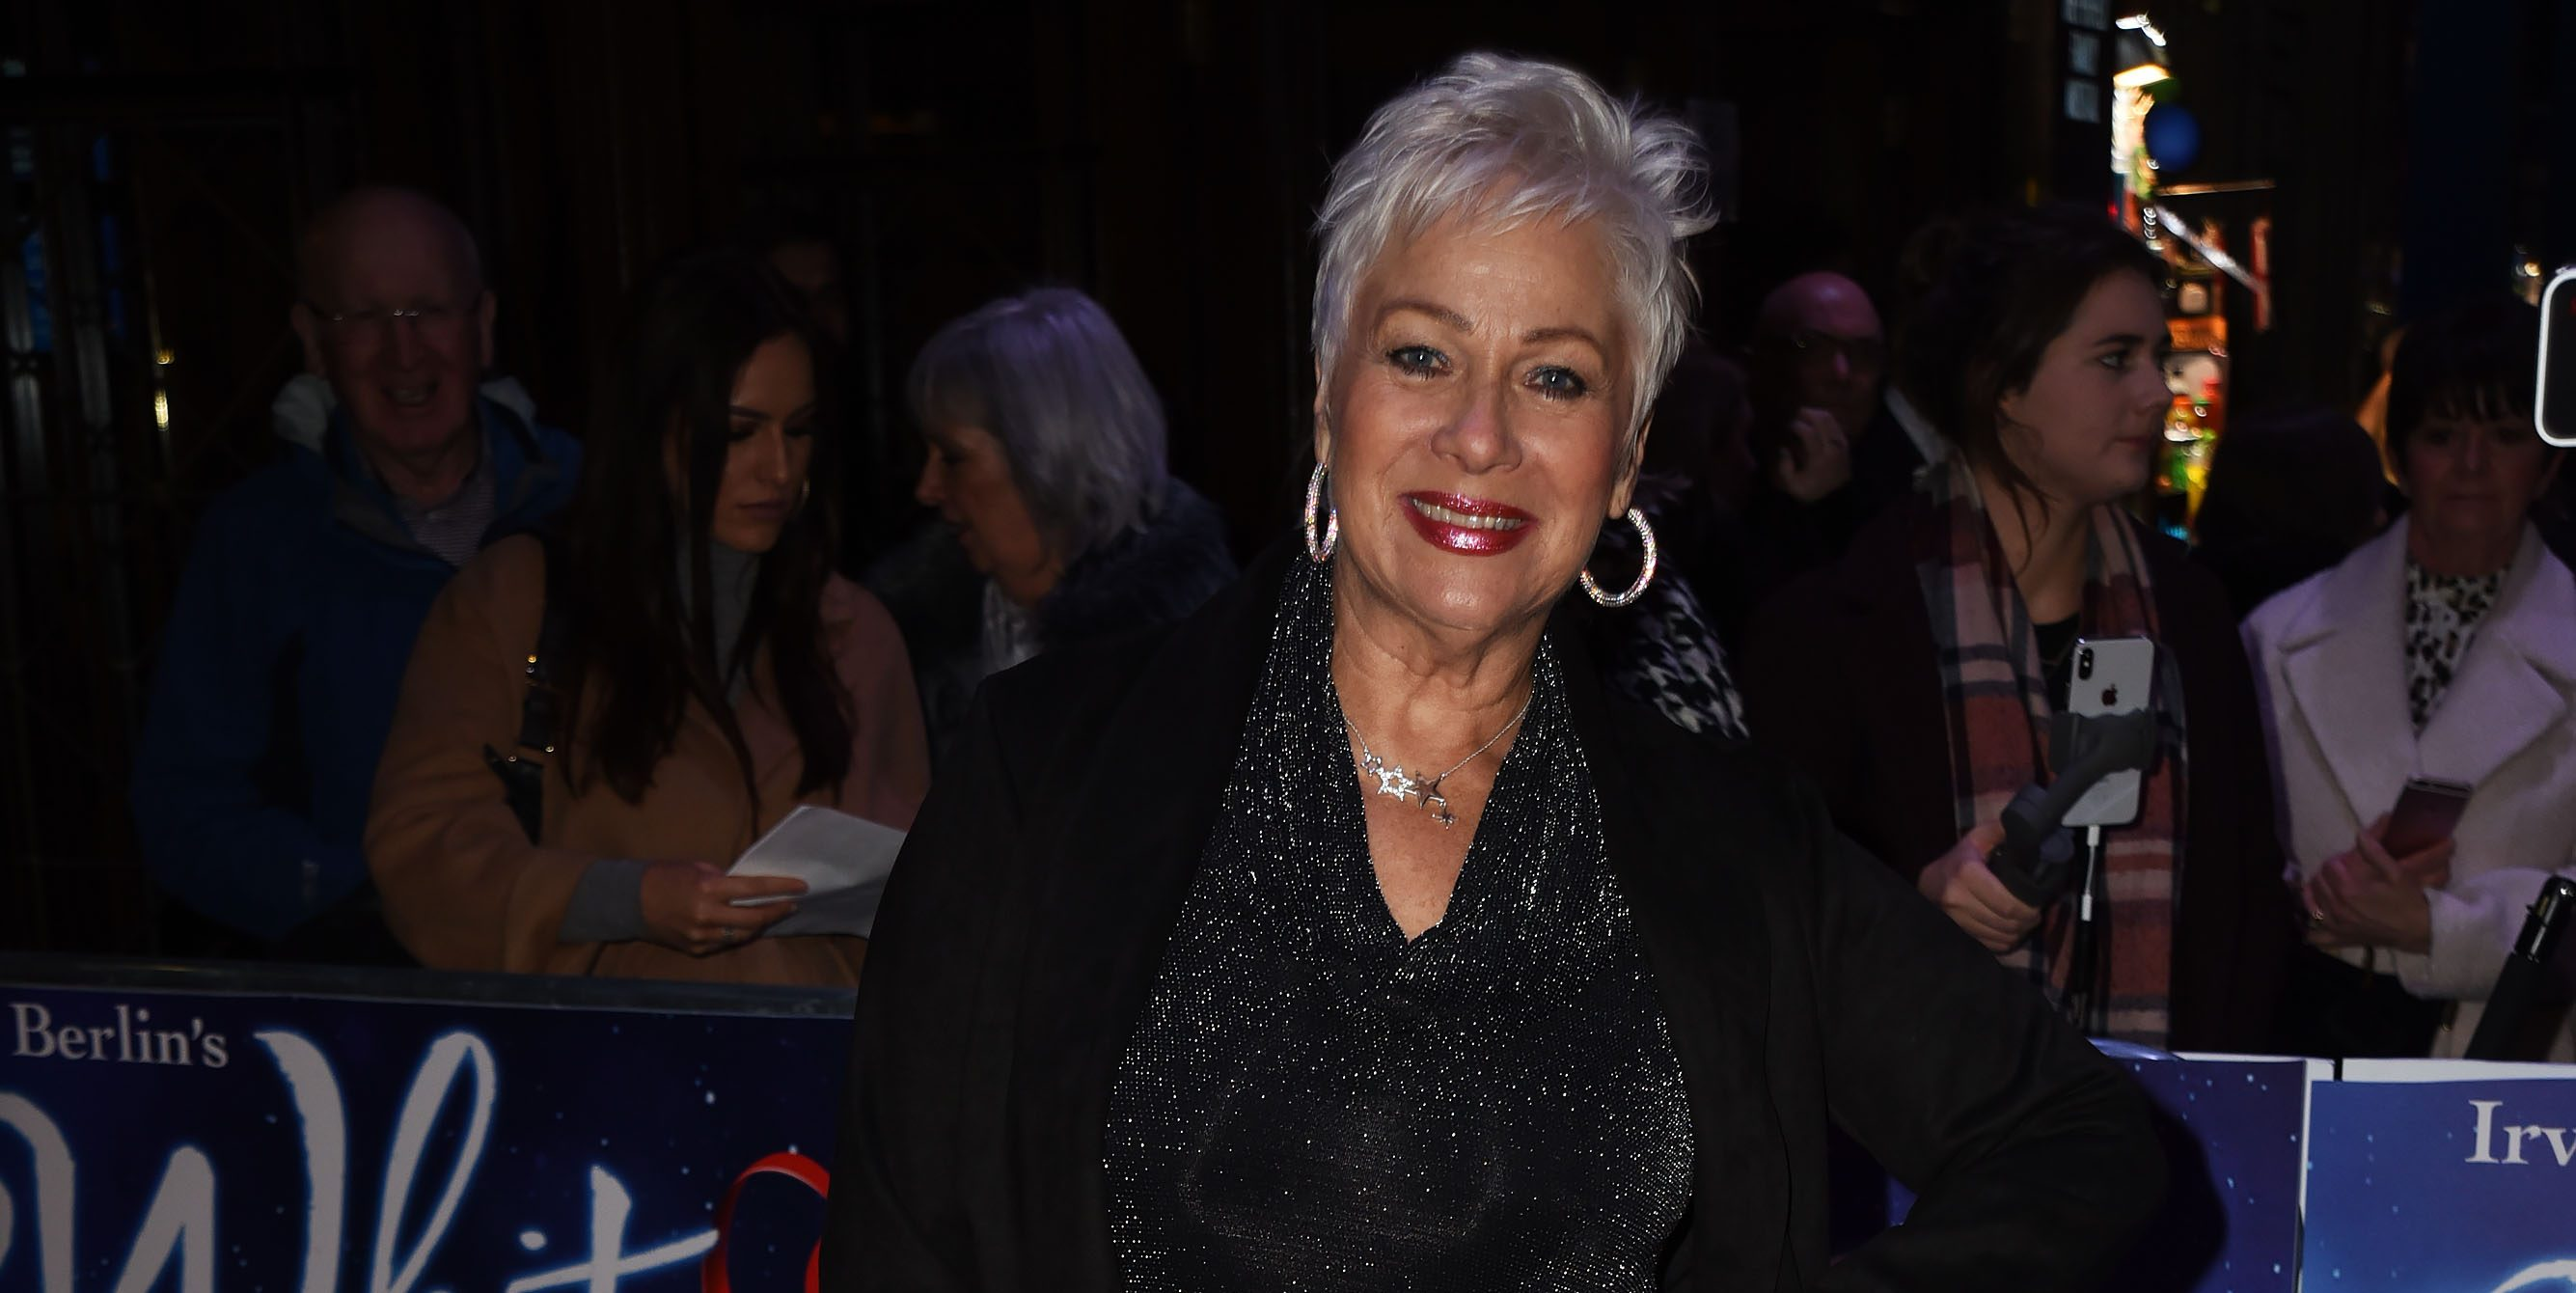 Denise Welch shares sweet picture with Emmerdale star son Louis Healy